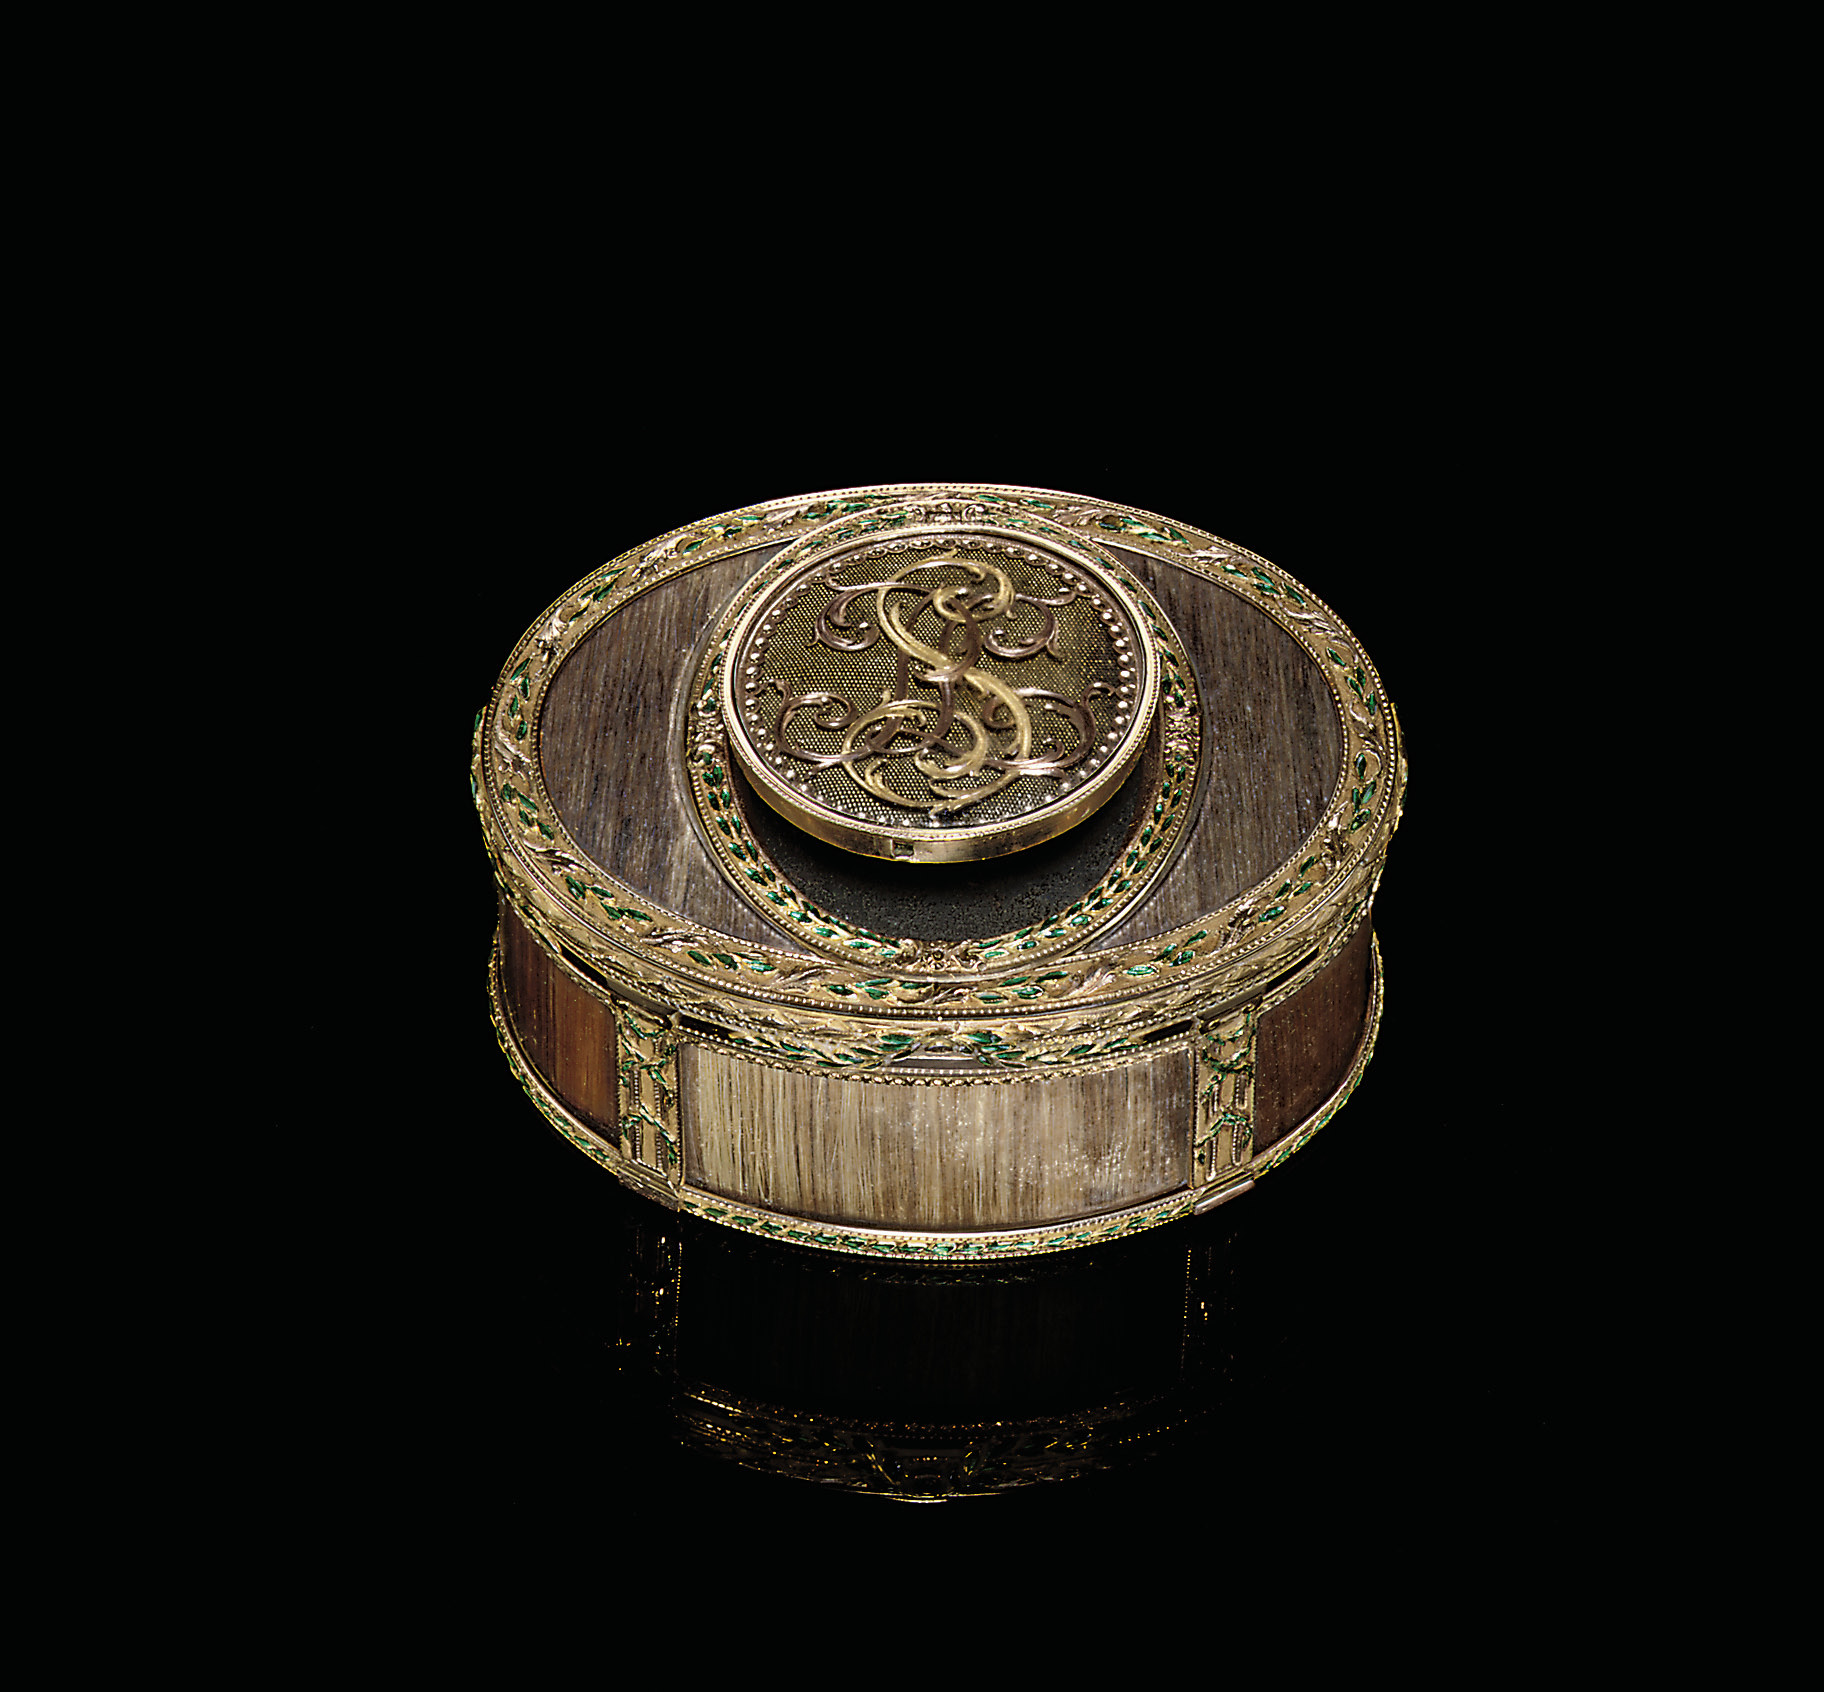 A LOUIS XVI PARCEL-ENAMELLED GOLD AND HAIR BOÎTE-À-SECRET